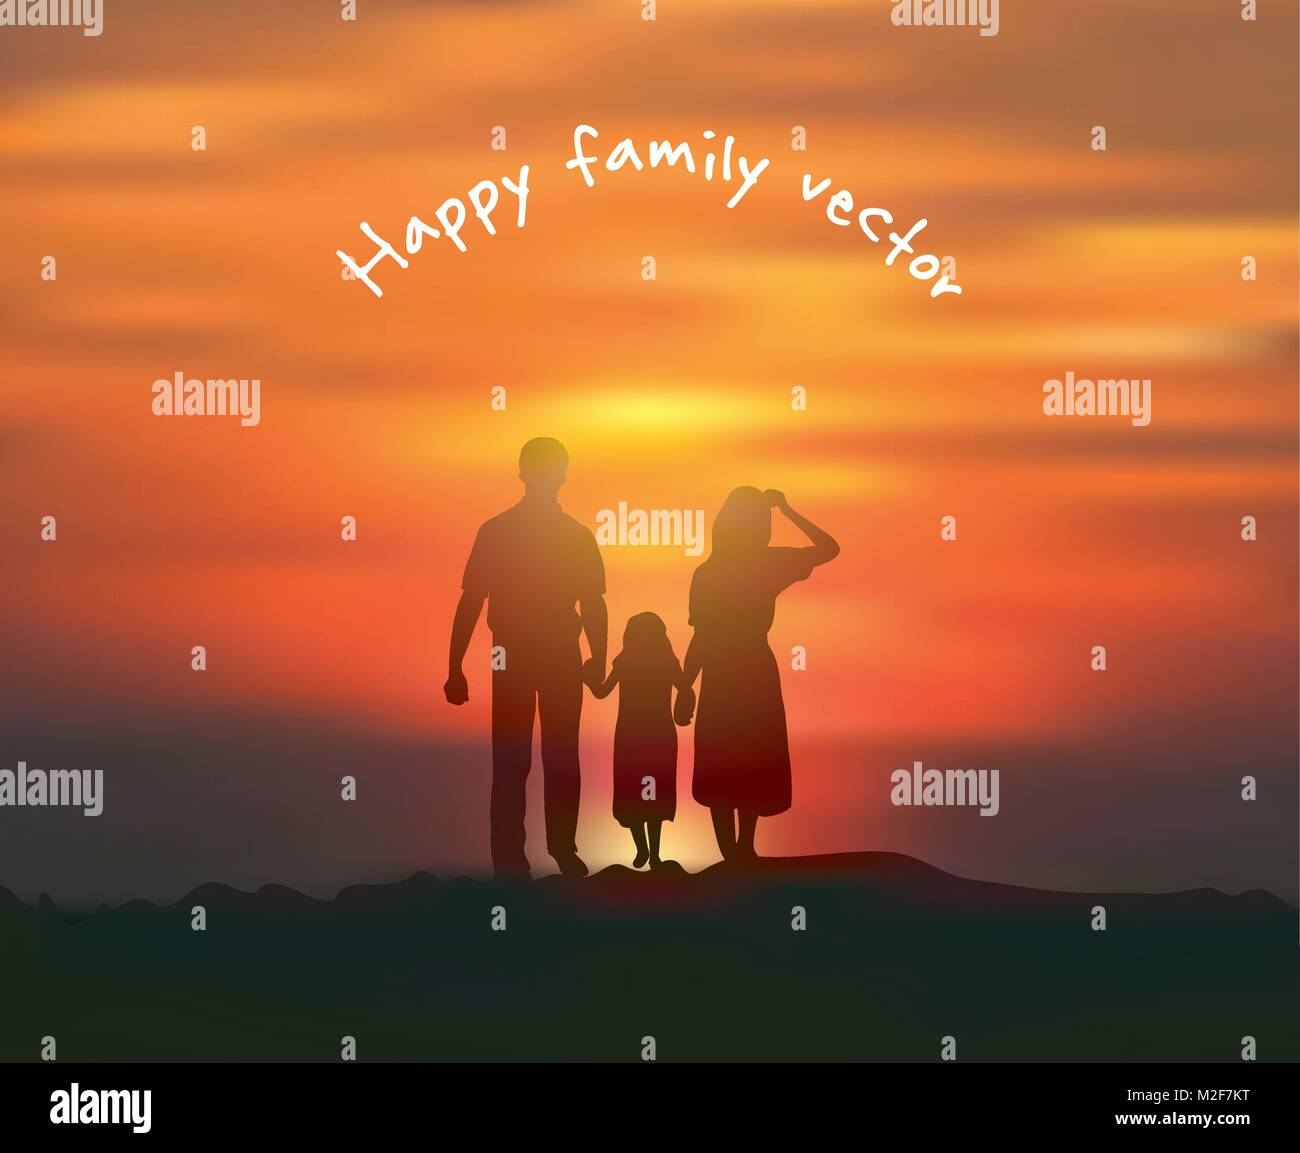 Silhouette happy family sun and sky sunset. - Stock Vector